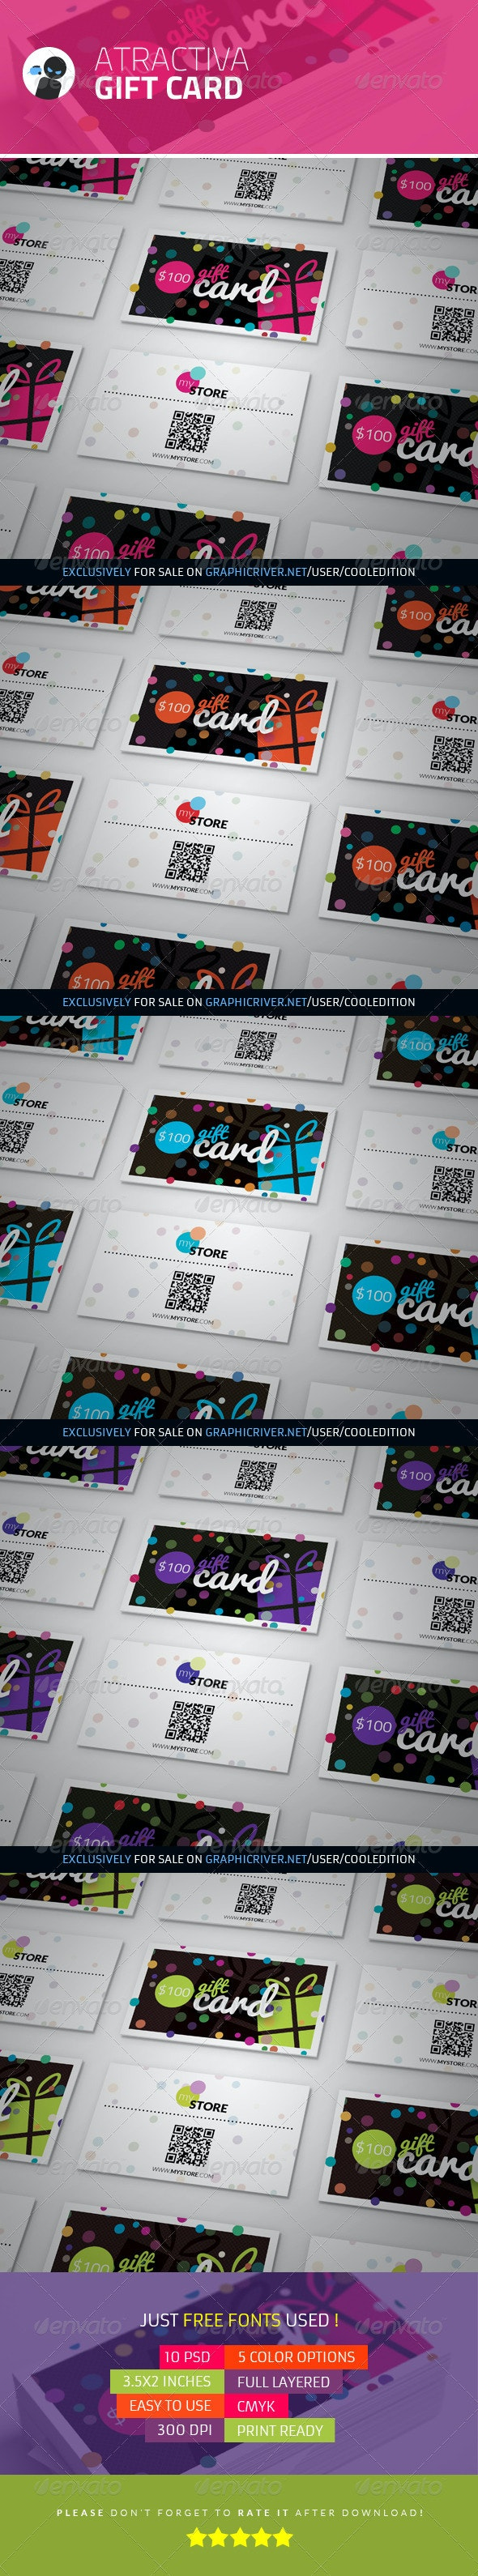 Atractiva - Gift Card - Industry Specific Business Cards